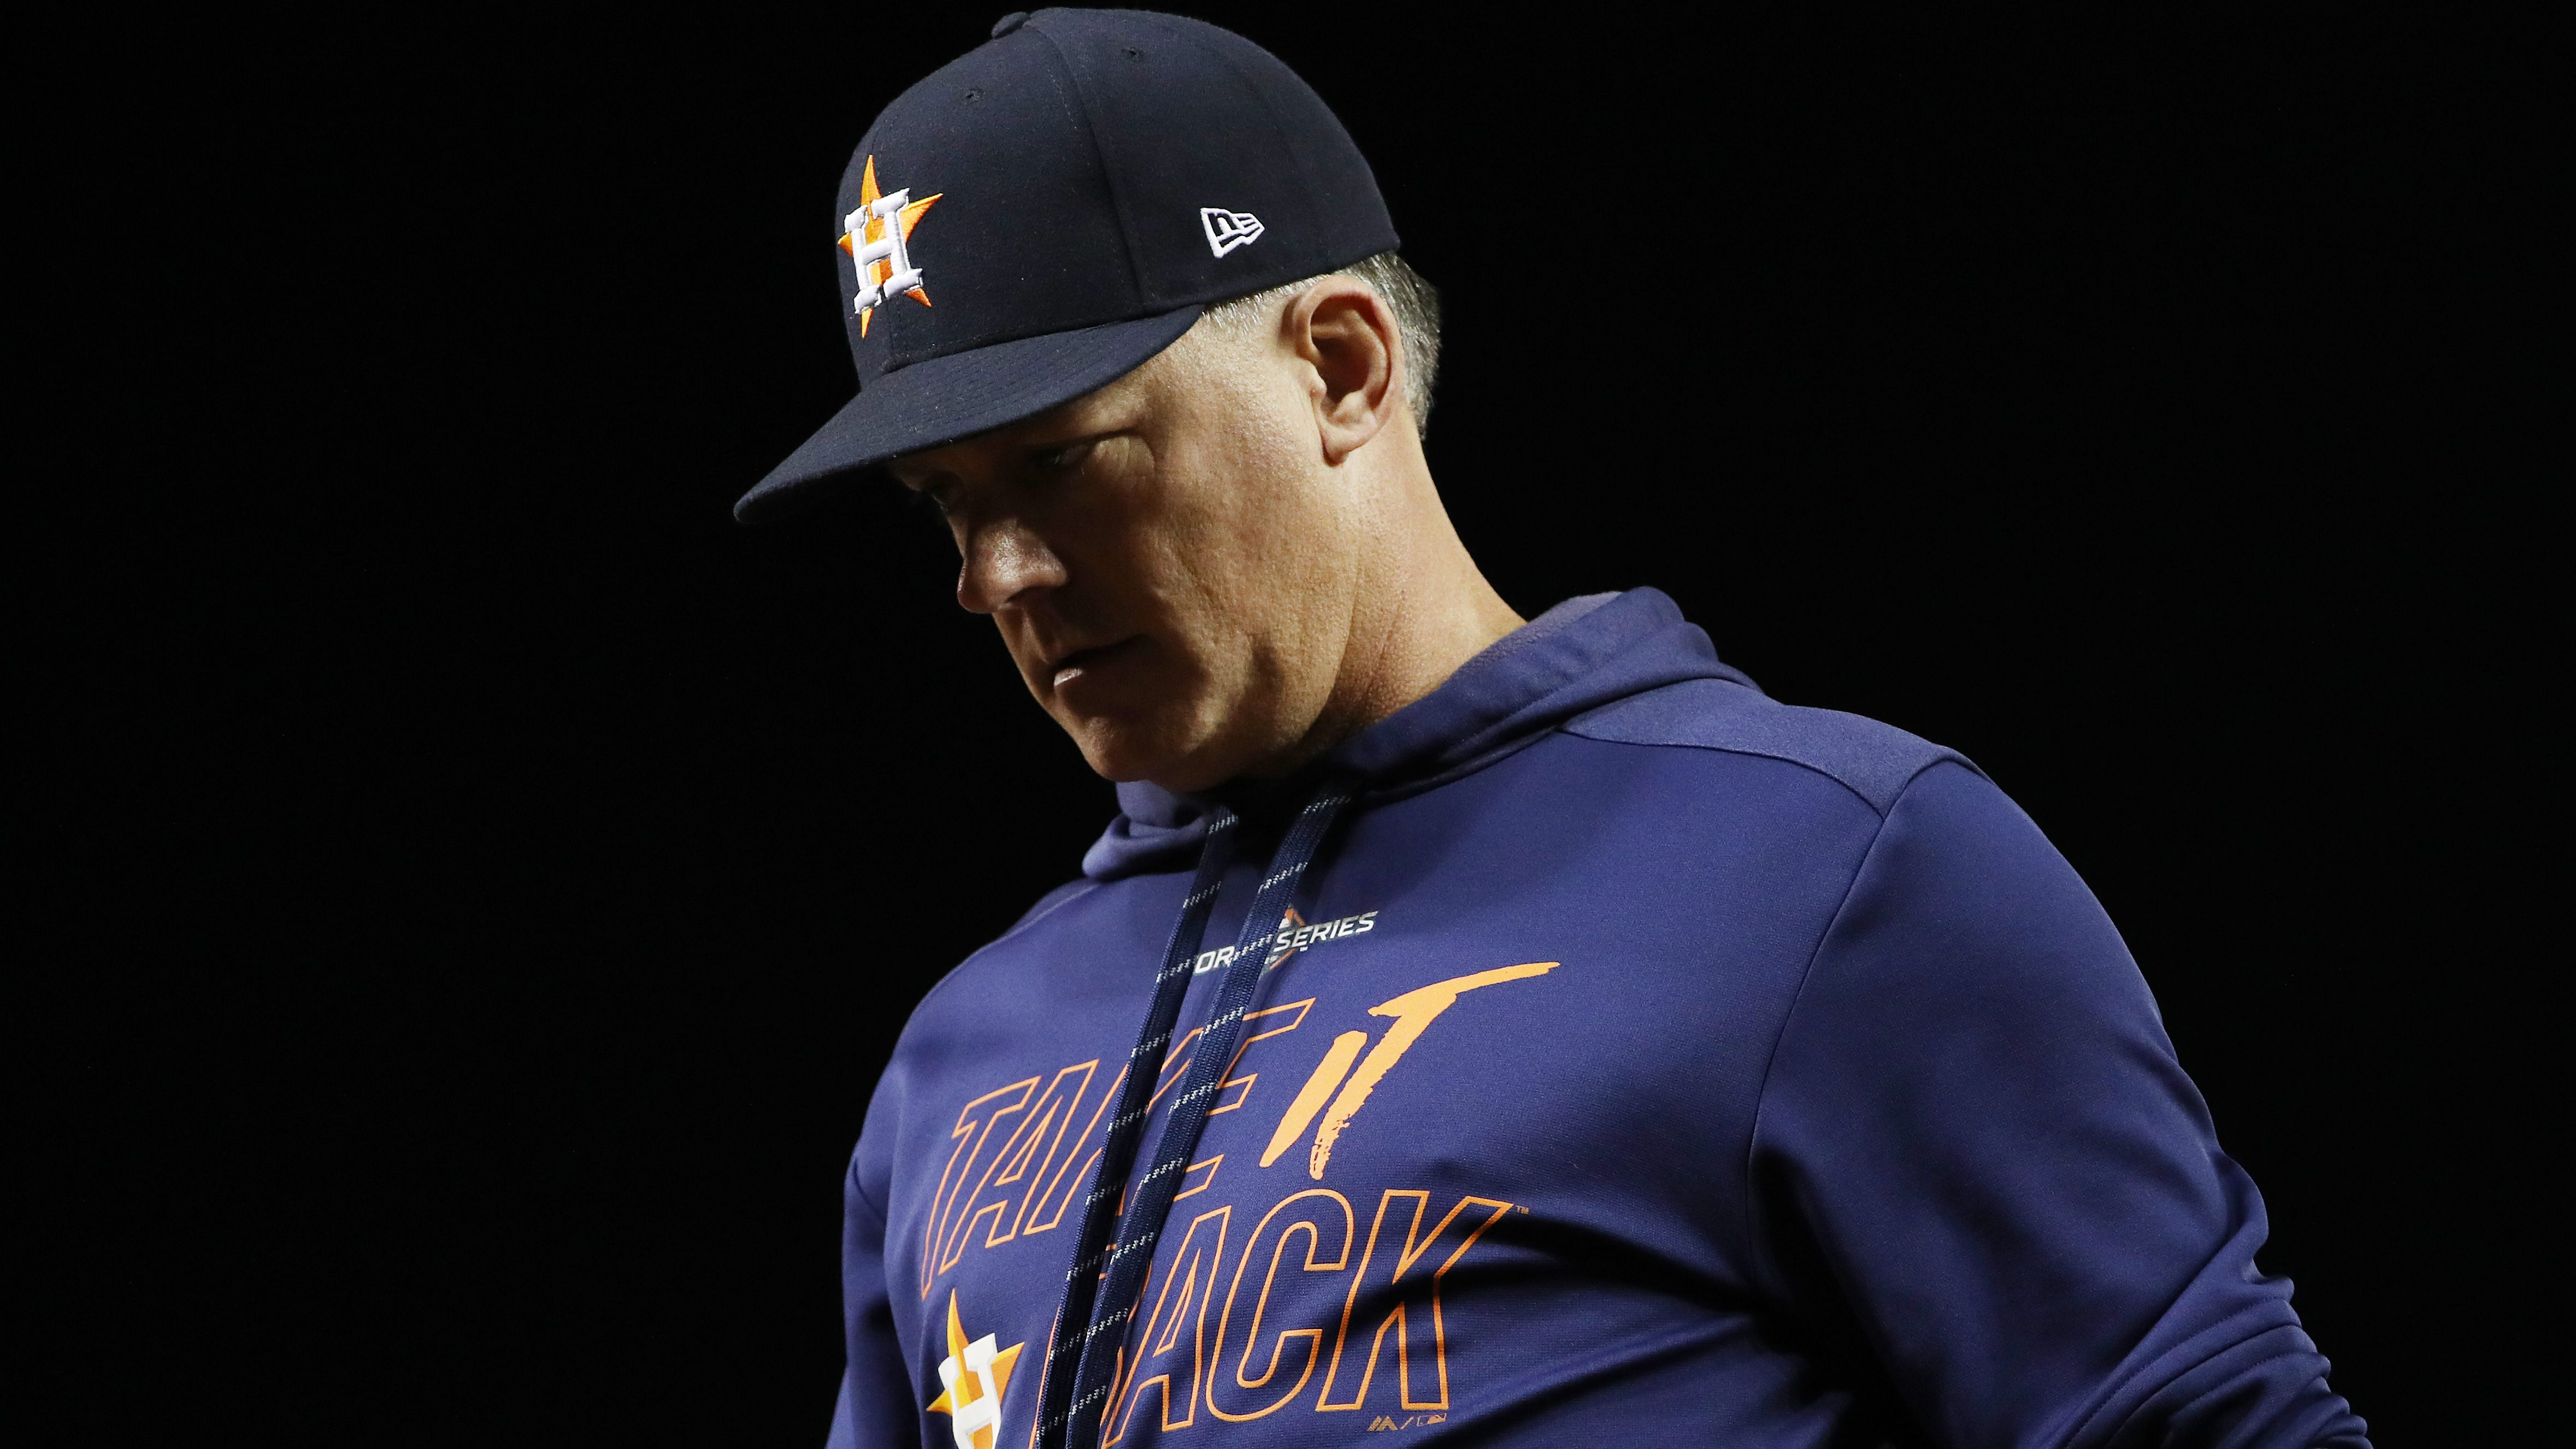 A.J. Hinch releases statement after being suspended and fired